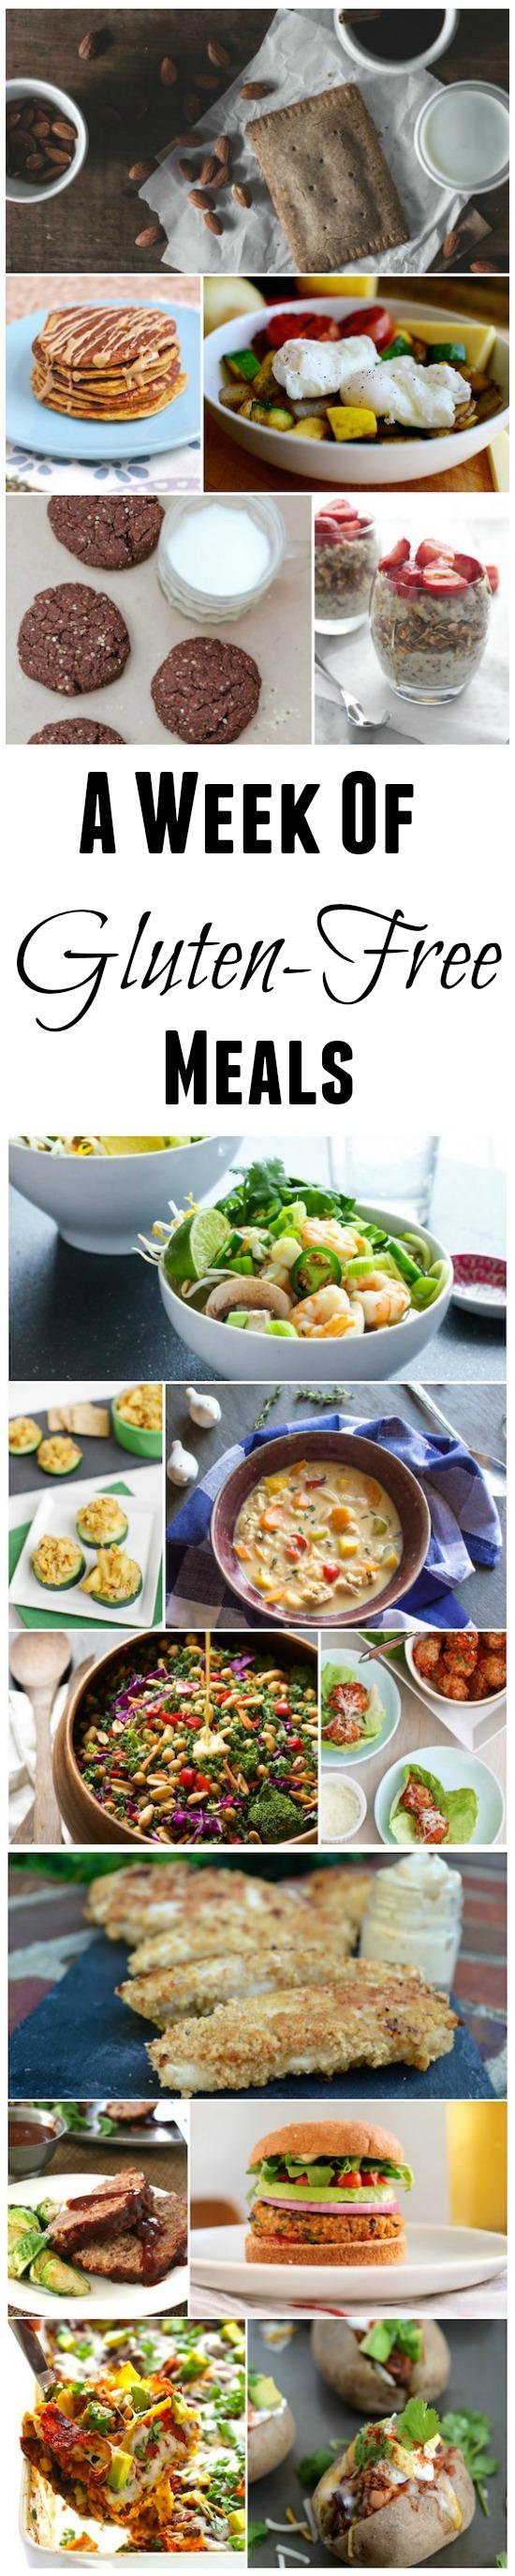 Looking for some new recipes? Here's a week of gluten-free meal ideas!